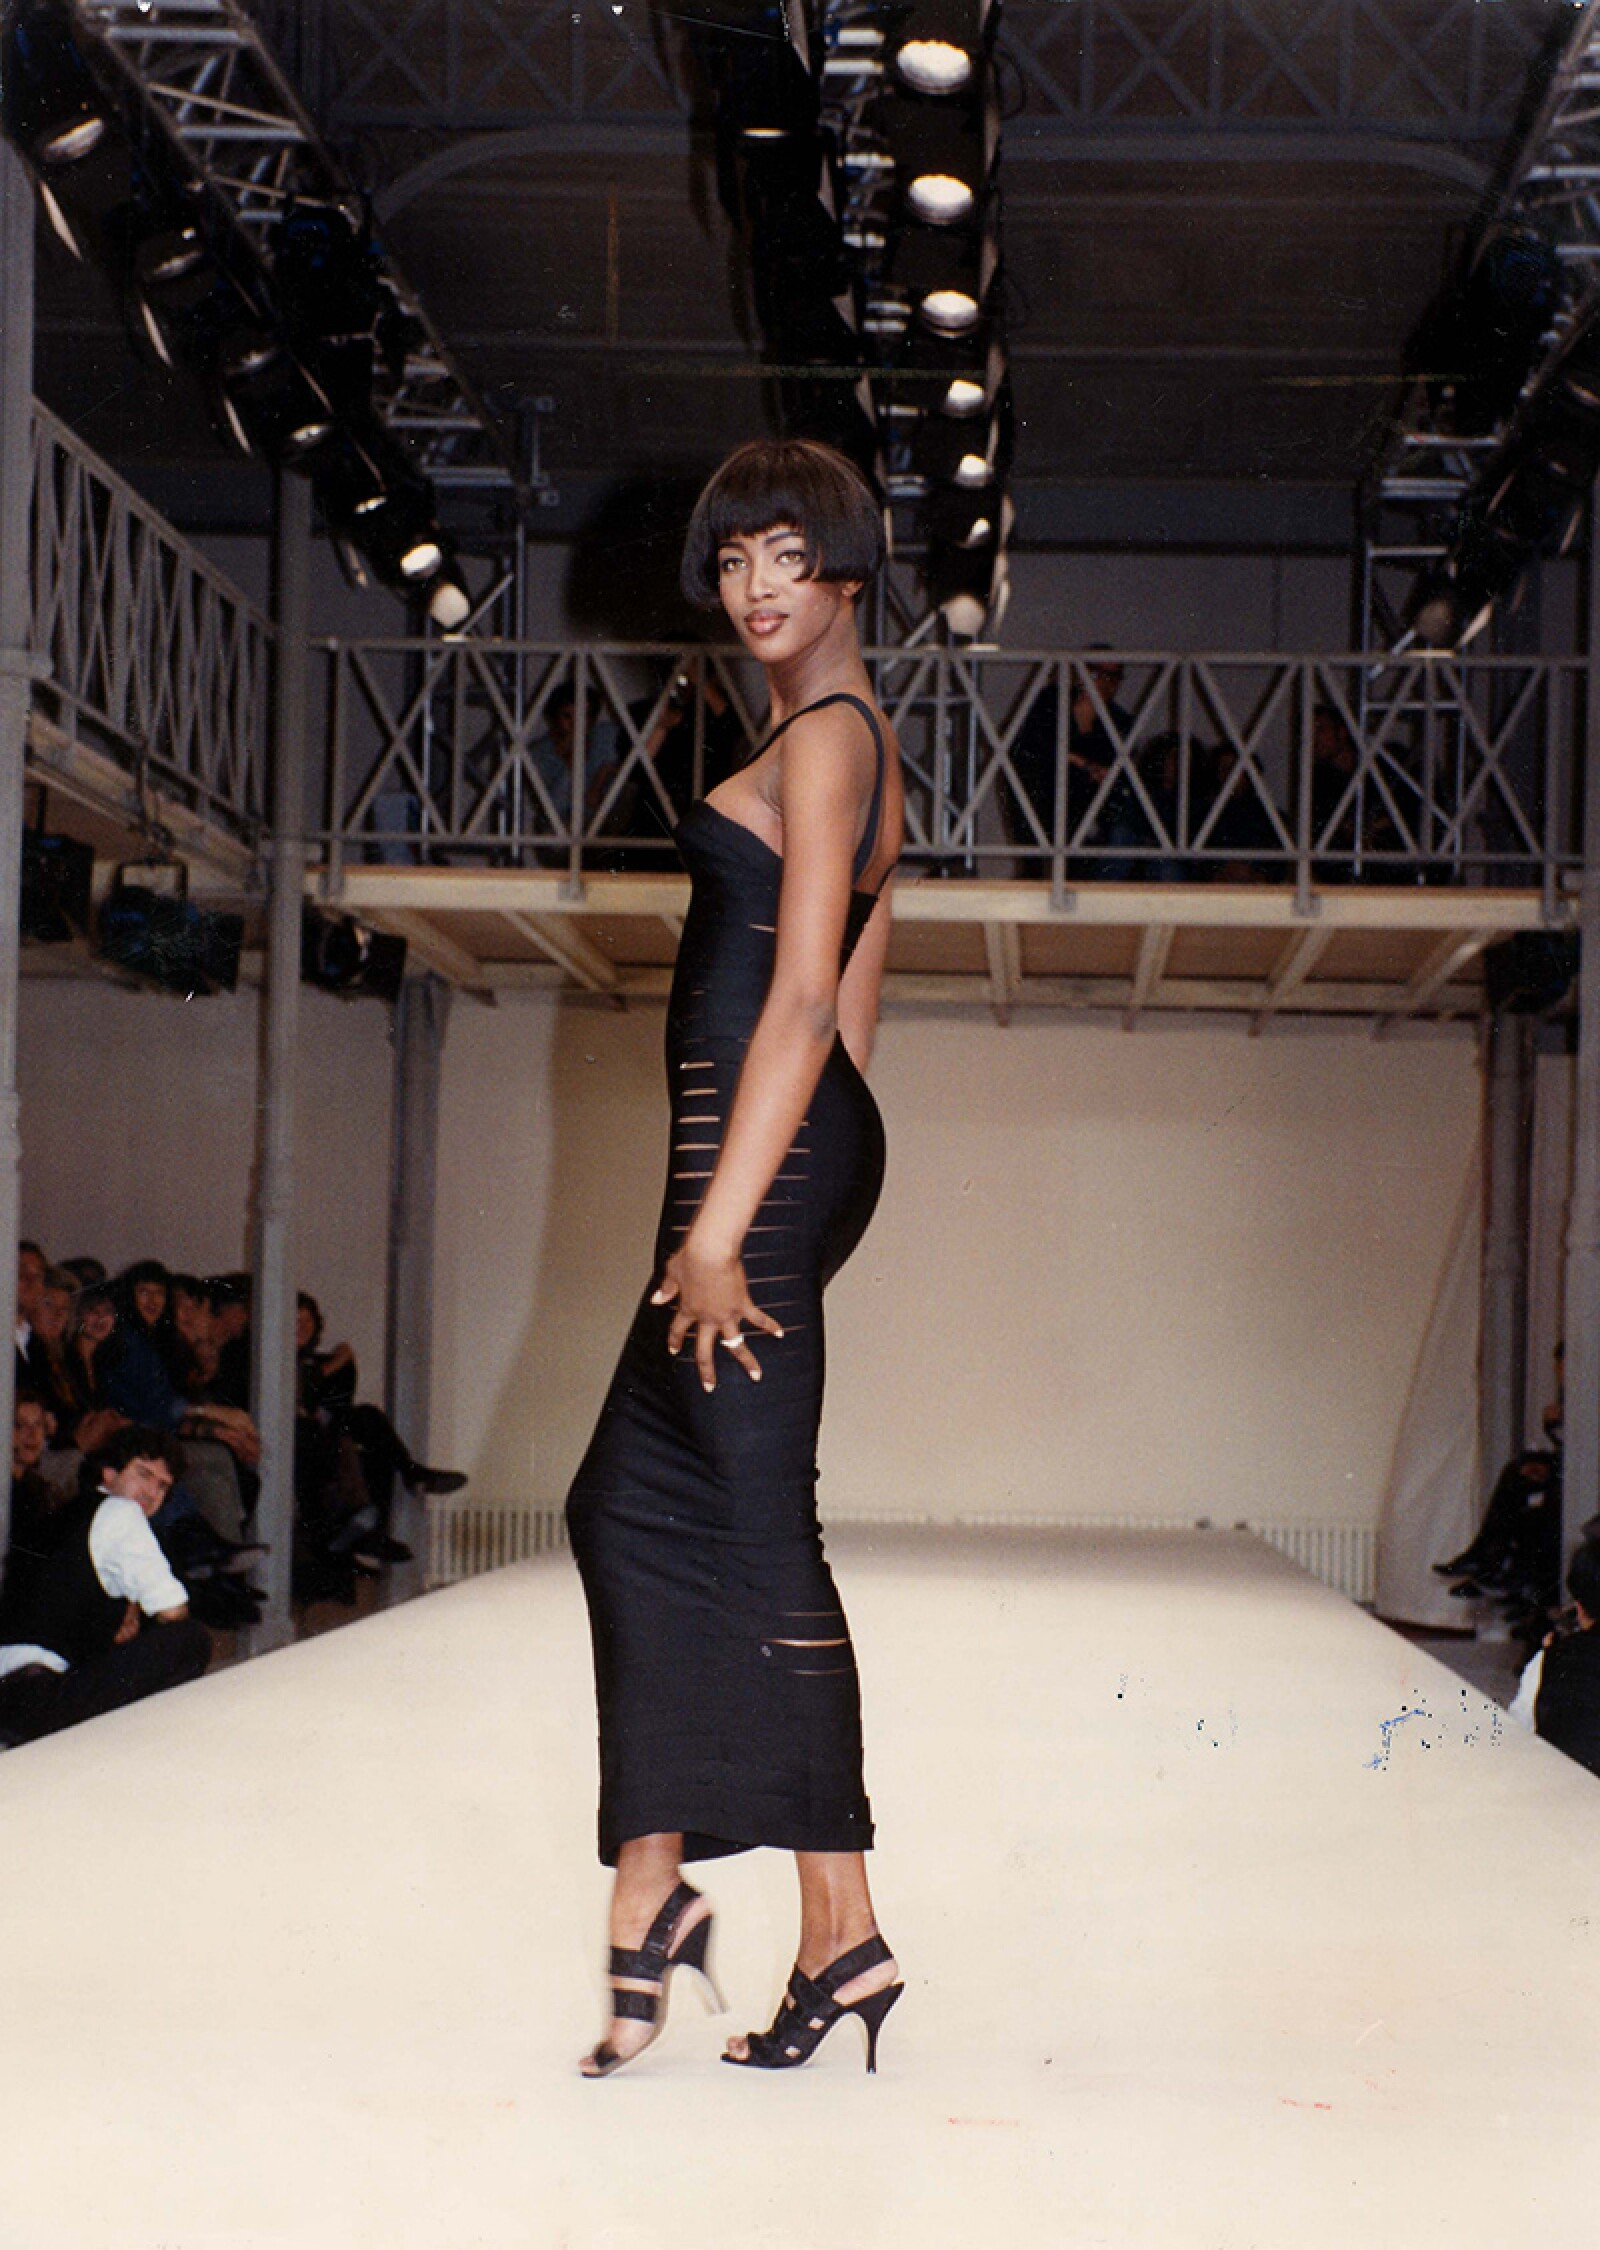 Naomi Cambpell Supermodel Is Pictured On The Catwalk Wearing A Black Dress Designed By Azzedine Alaia.